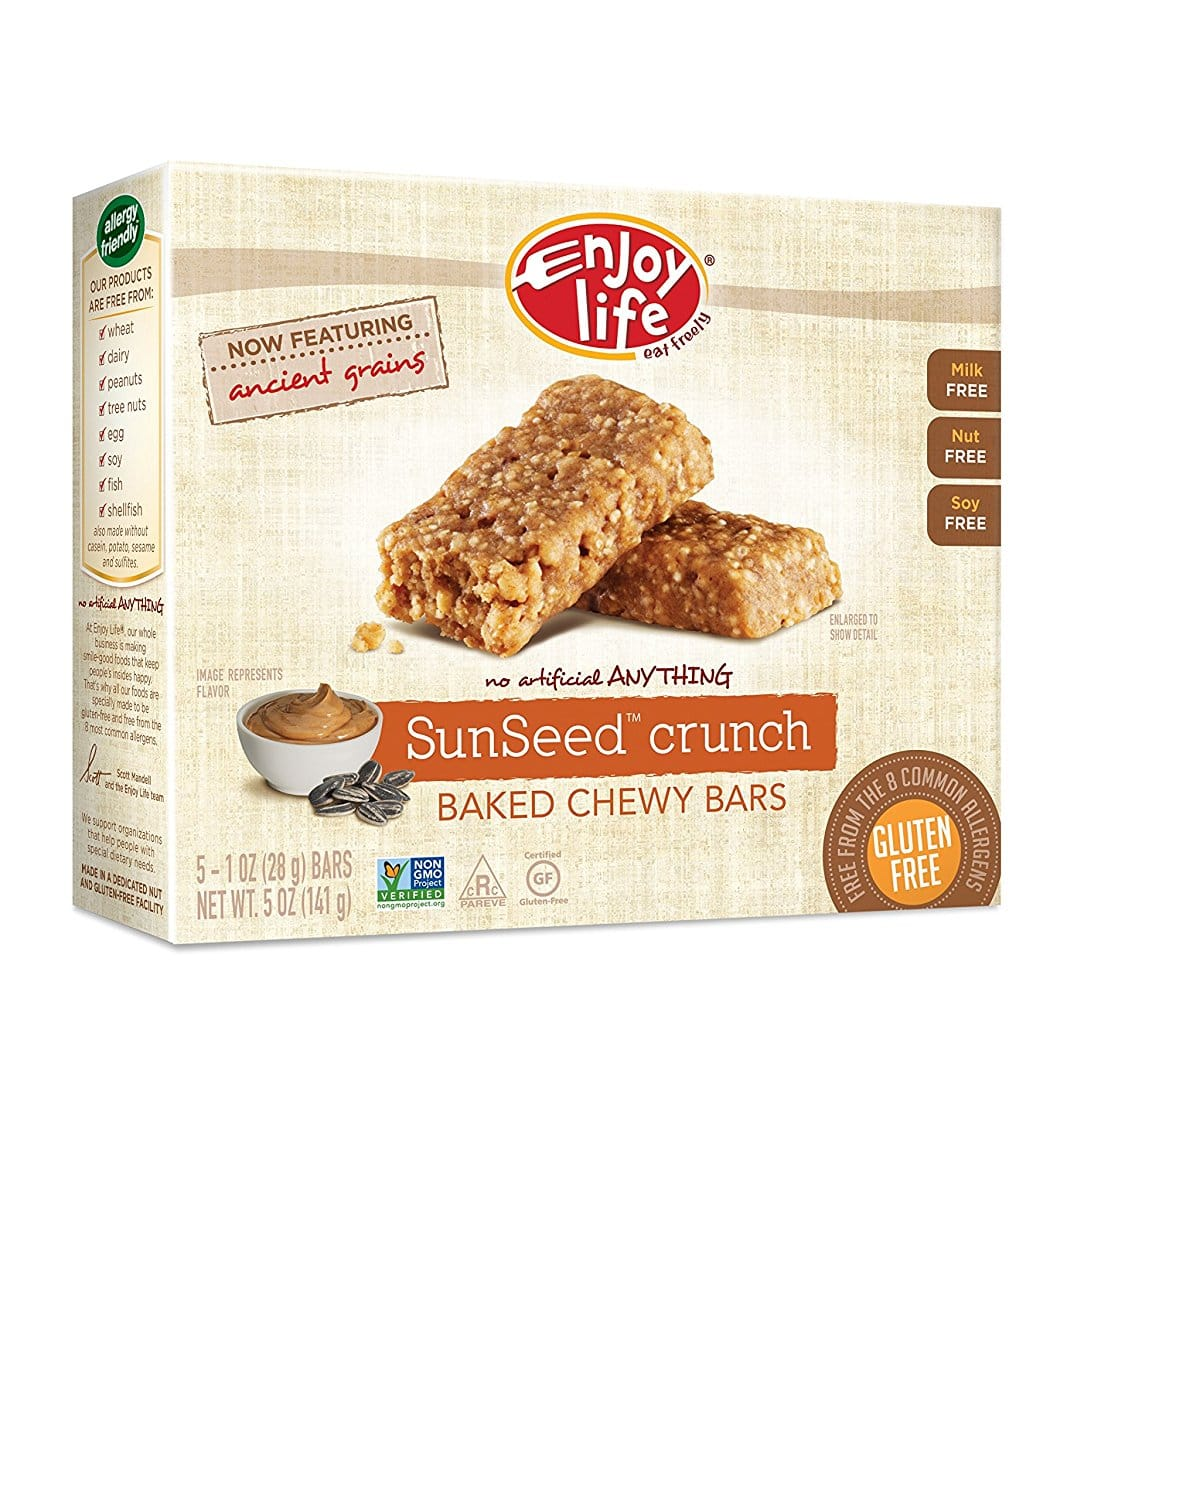 Enjoy Life Baked Chewy Bars, Gluten-Free, Non-GMO, Dairy-Free, Nut-Free + Soy-Free, 5 Count Bar/5.75 Ounce Box (Pack of 6) as low as $9.78 w/coupon & SS